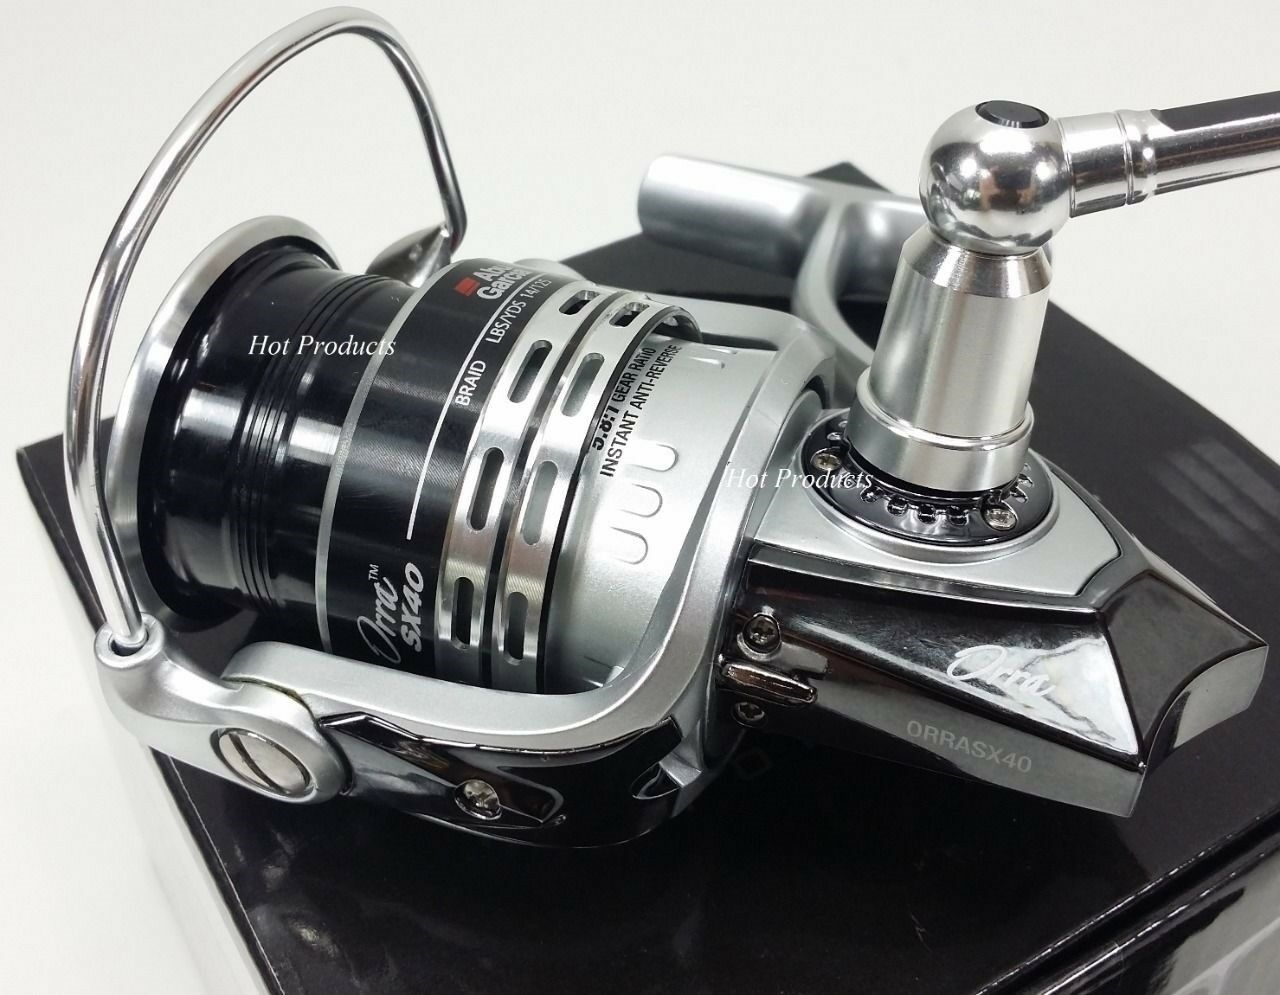 ABU GARCIA ORRA SX-40 SPINNING REEL SX 40 5.8 5.8 5.8 1 SX40 - SPARE SPOOL INCLUDED 24dfbc